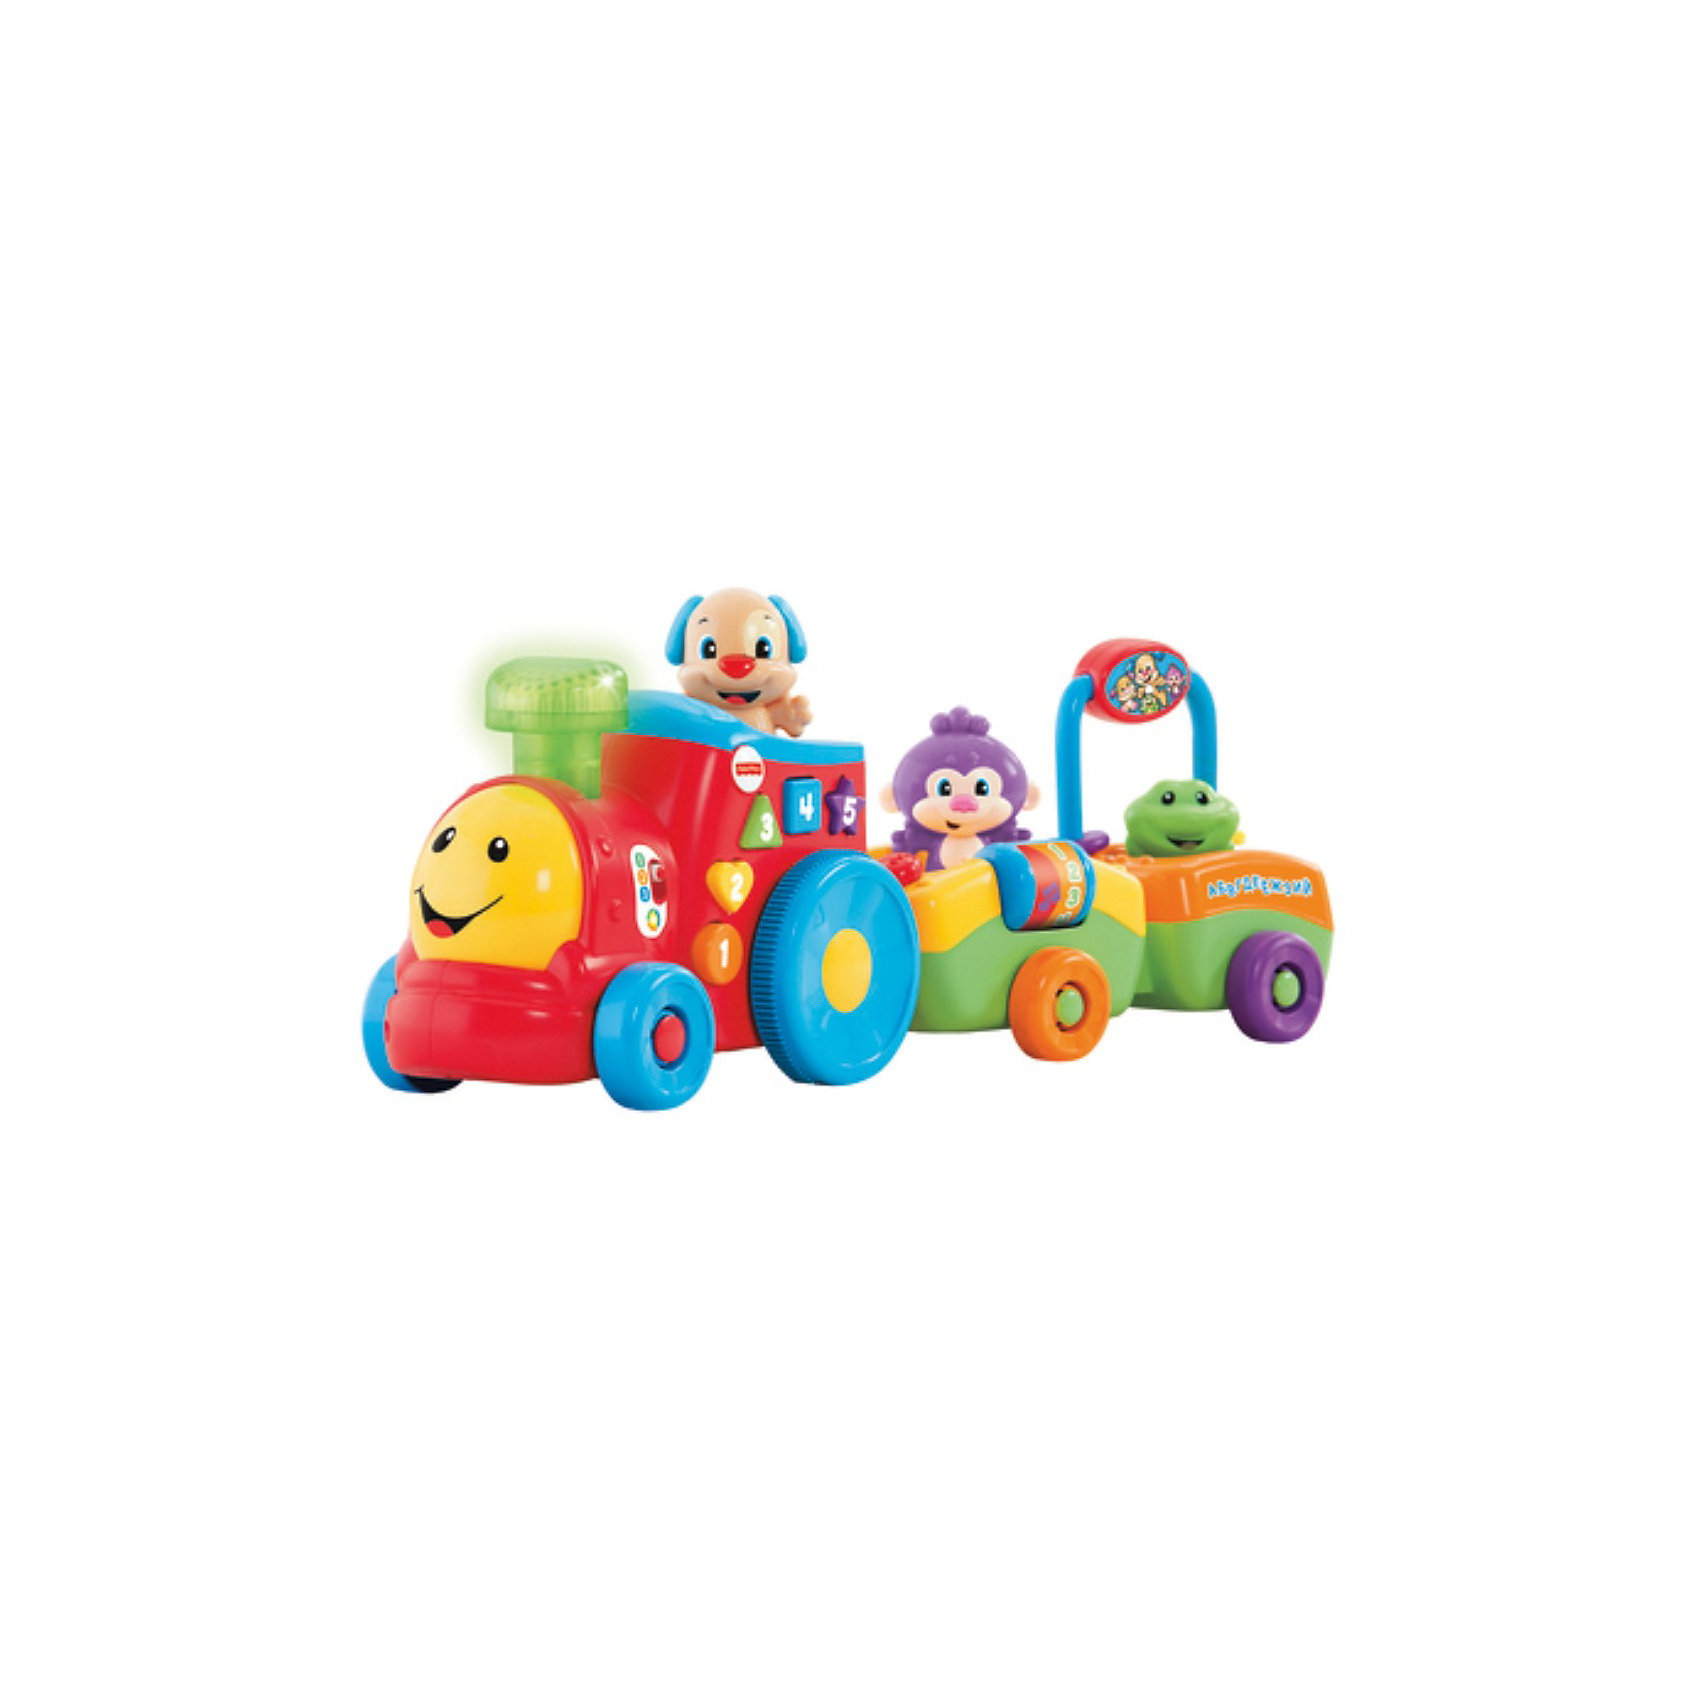 Mattel Паровозик ученого щенка, серия Смейся и учись, Fisher-Price fisher price базовый паровозик thomas&friends